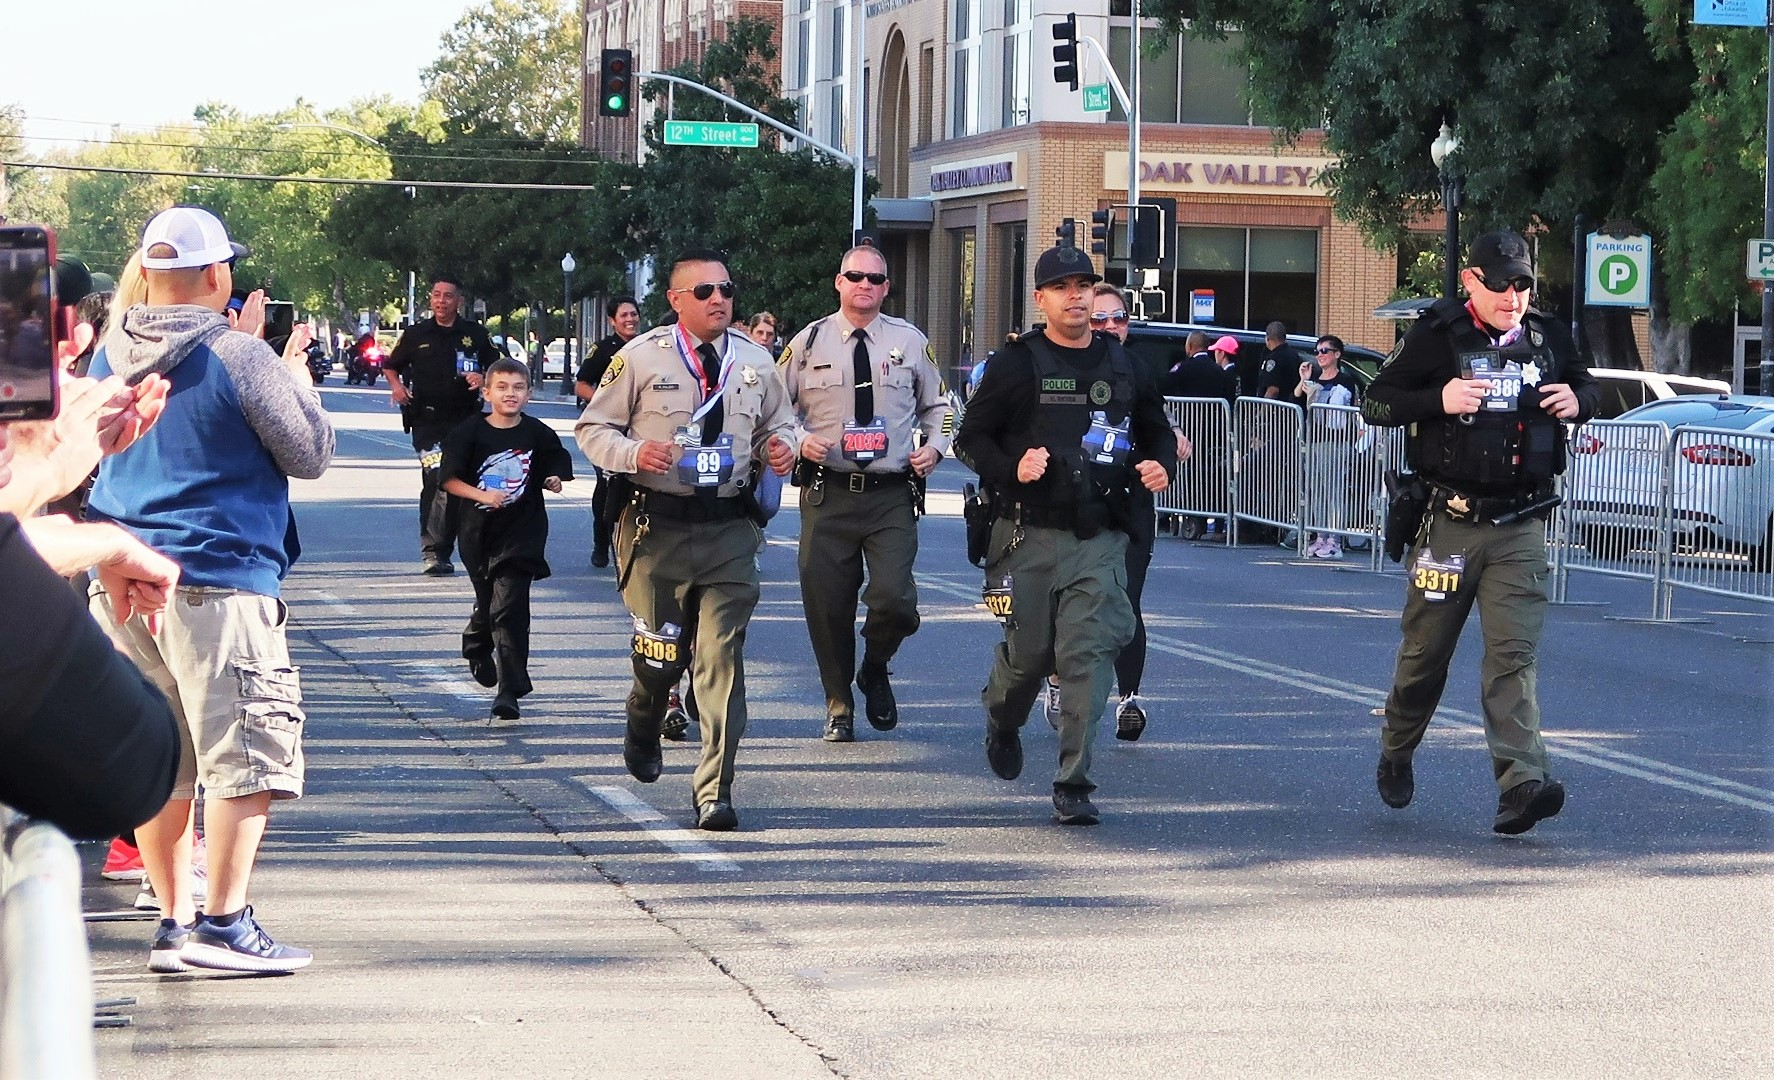 Correctional staff run on a street as people cheer from the sidewalks.